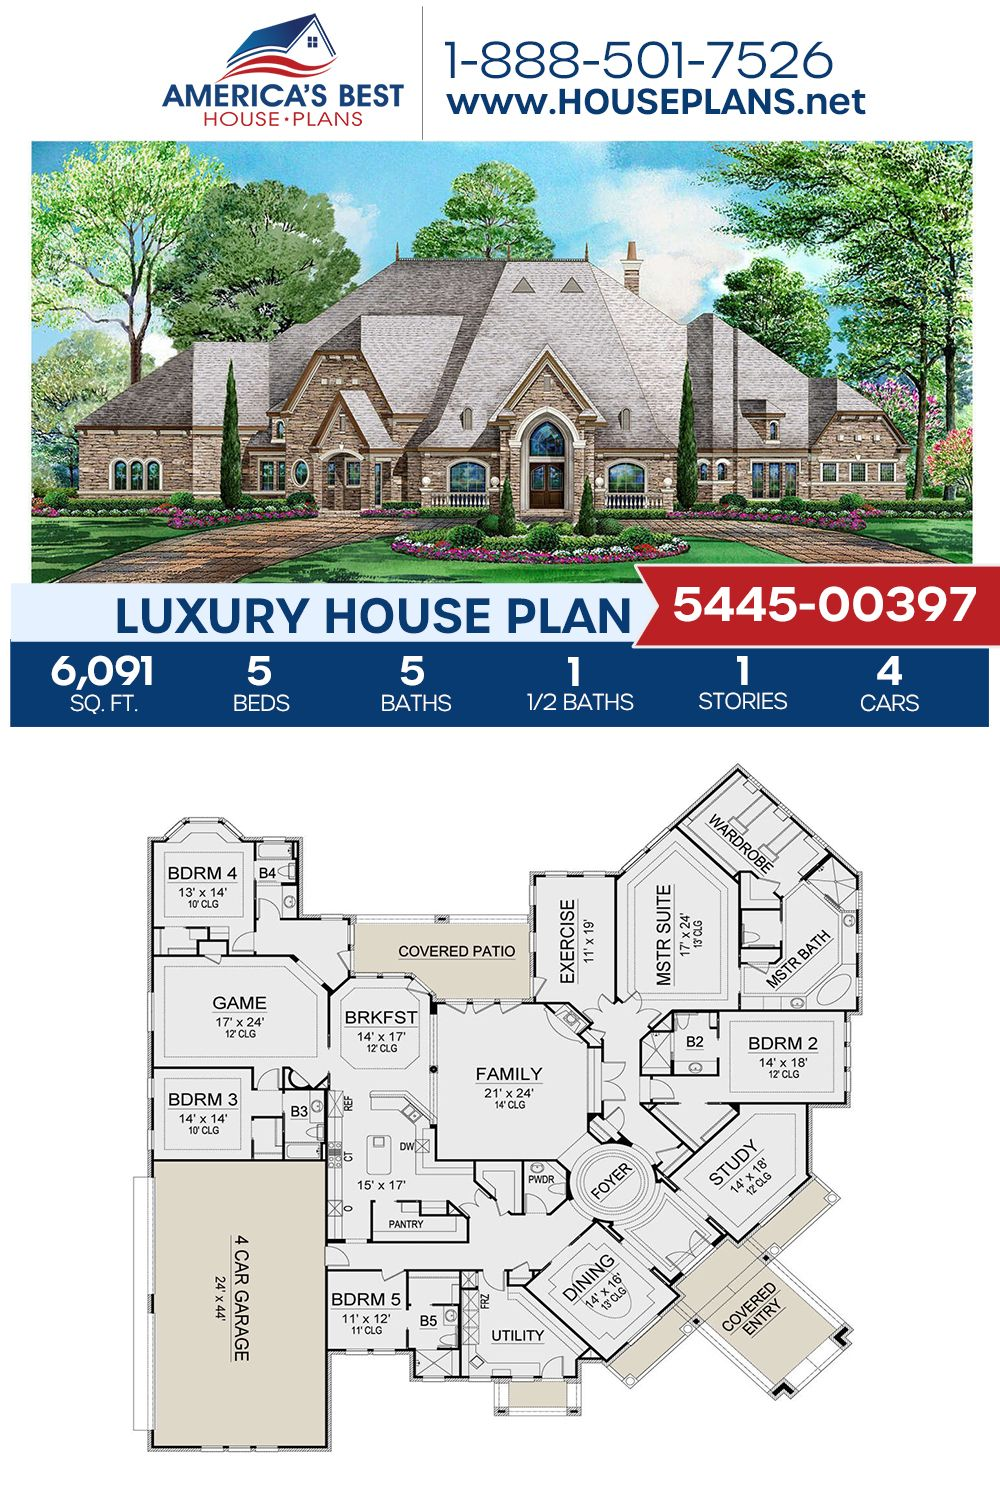 House Plan 5445 00397 Luxury Plan 6 091 Square Feet 5 Bedrooms 5 5 Bathrooms Multigenerational House Plans Luxury House Plans Sims 4 House Design